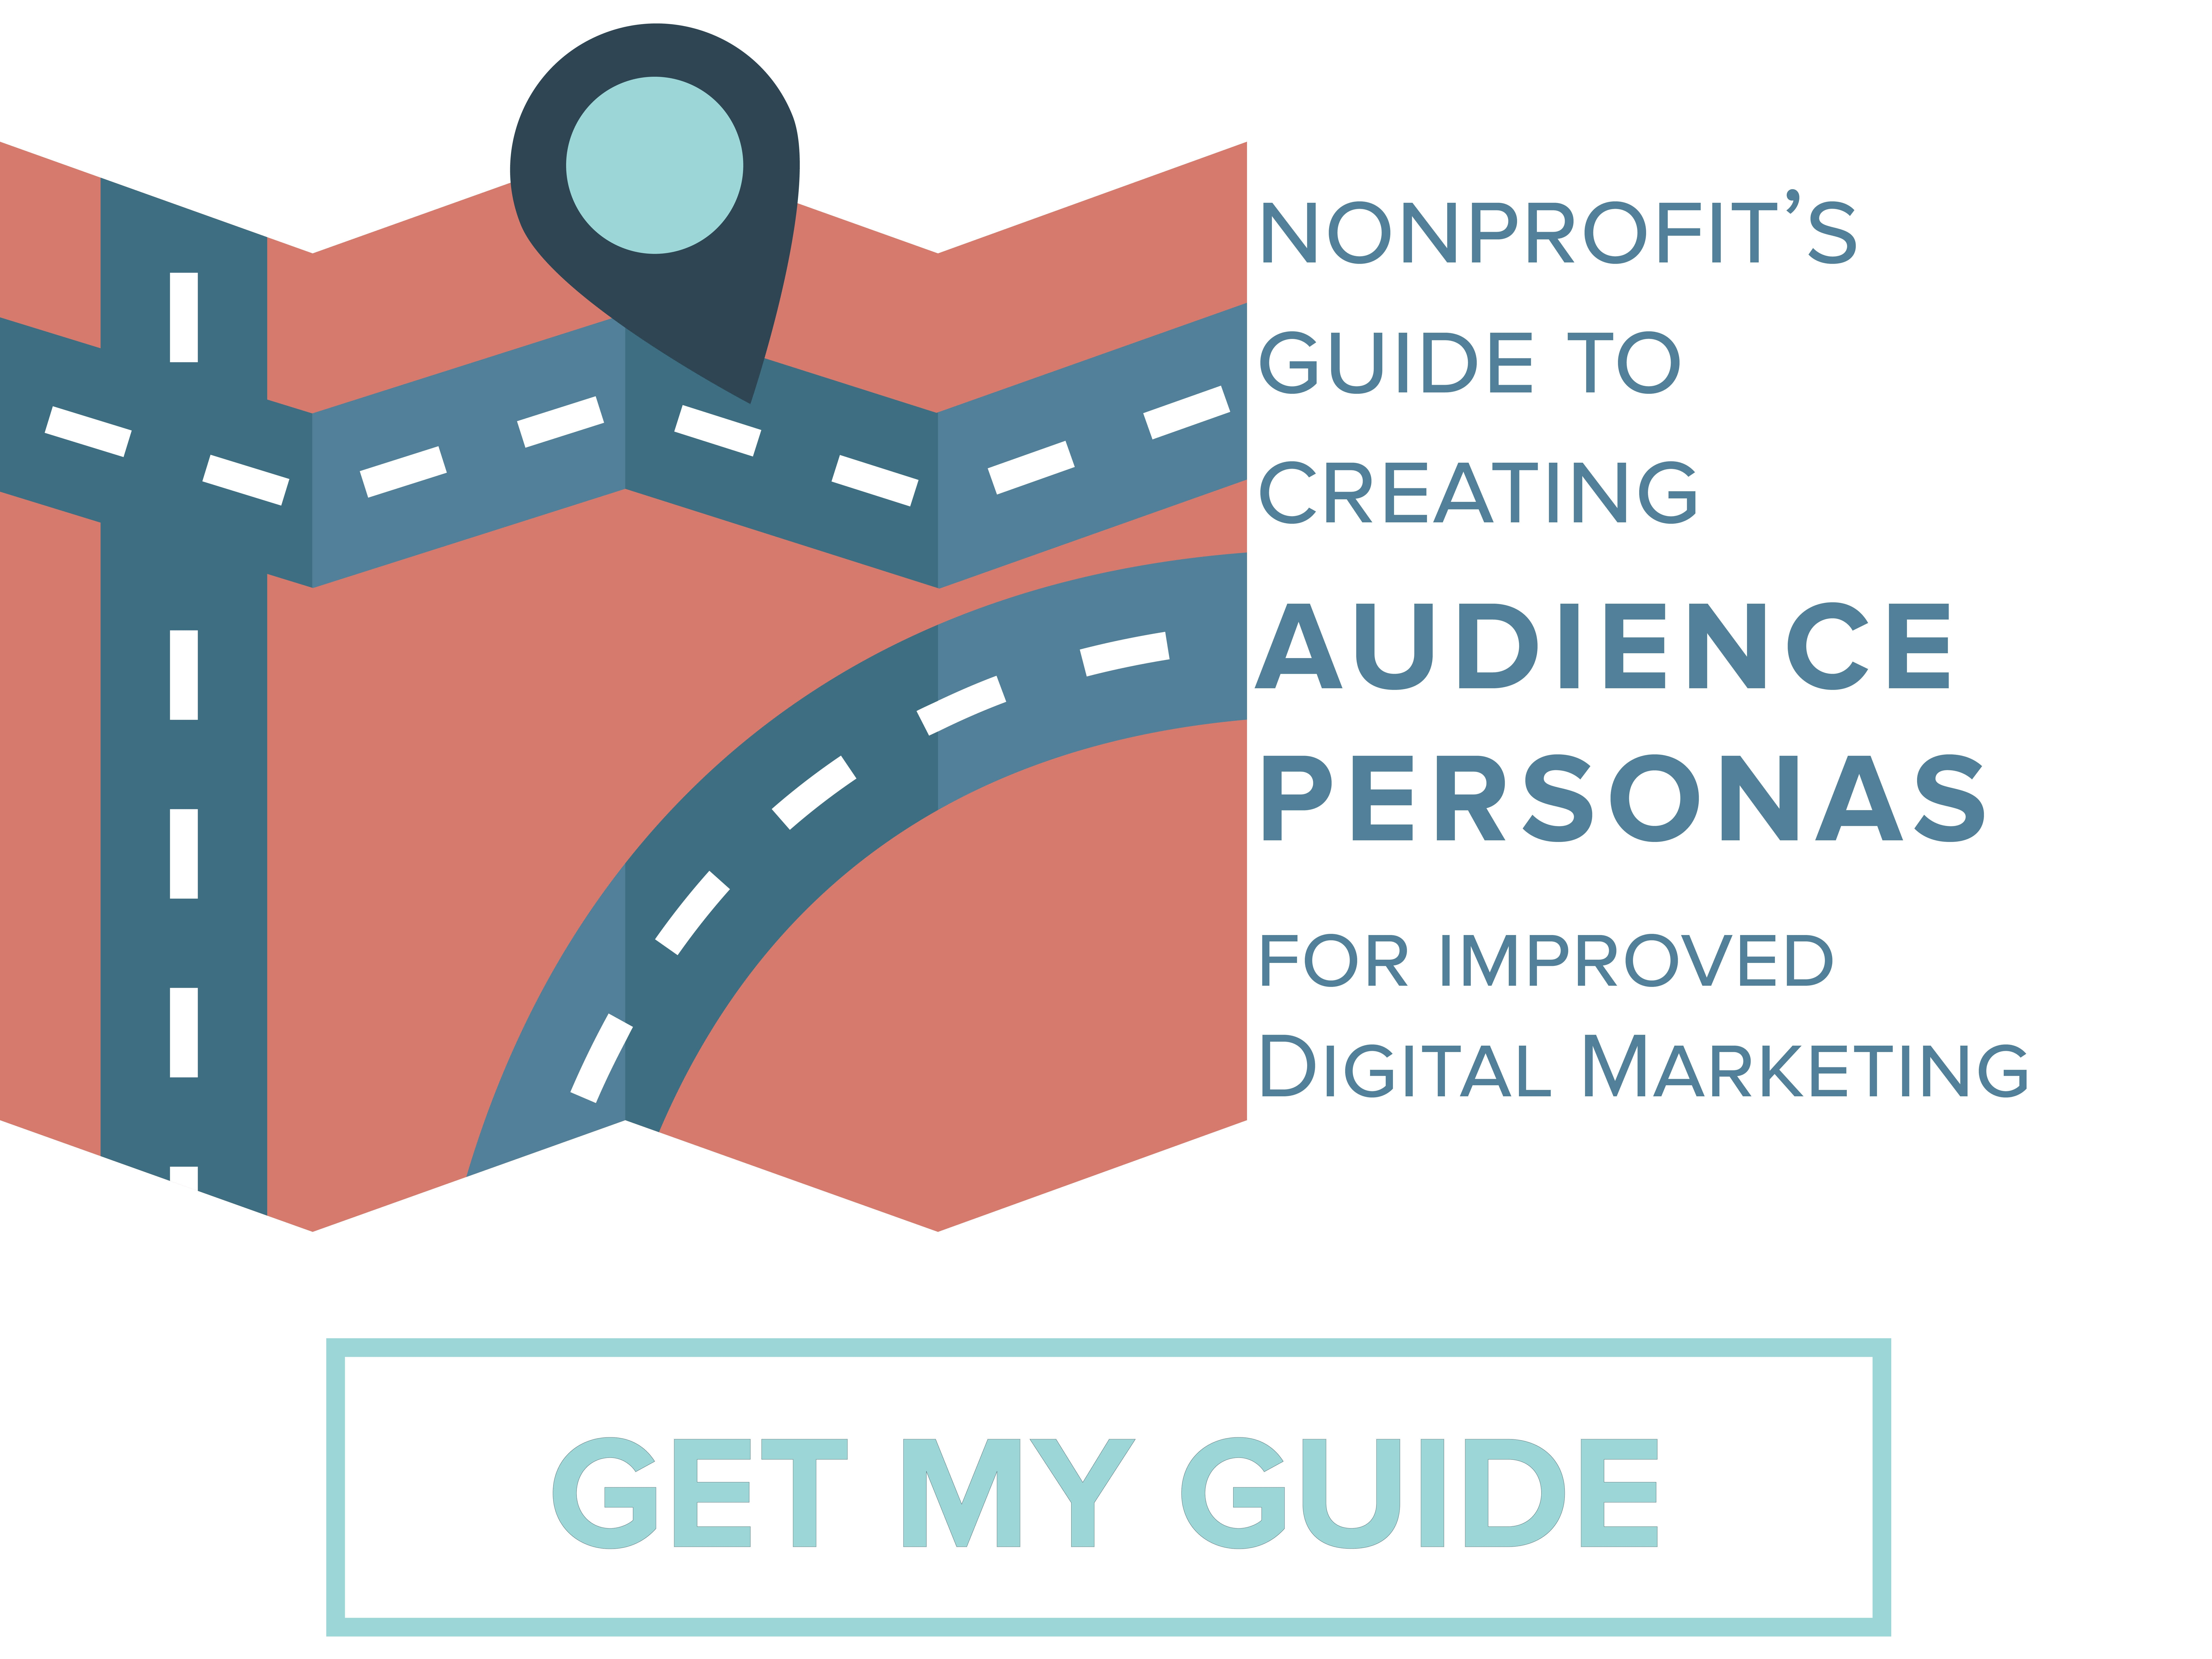 nonprofit-guide-for-audience-personas